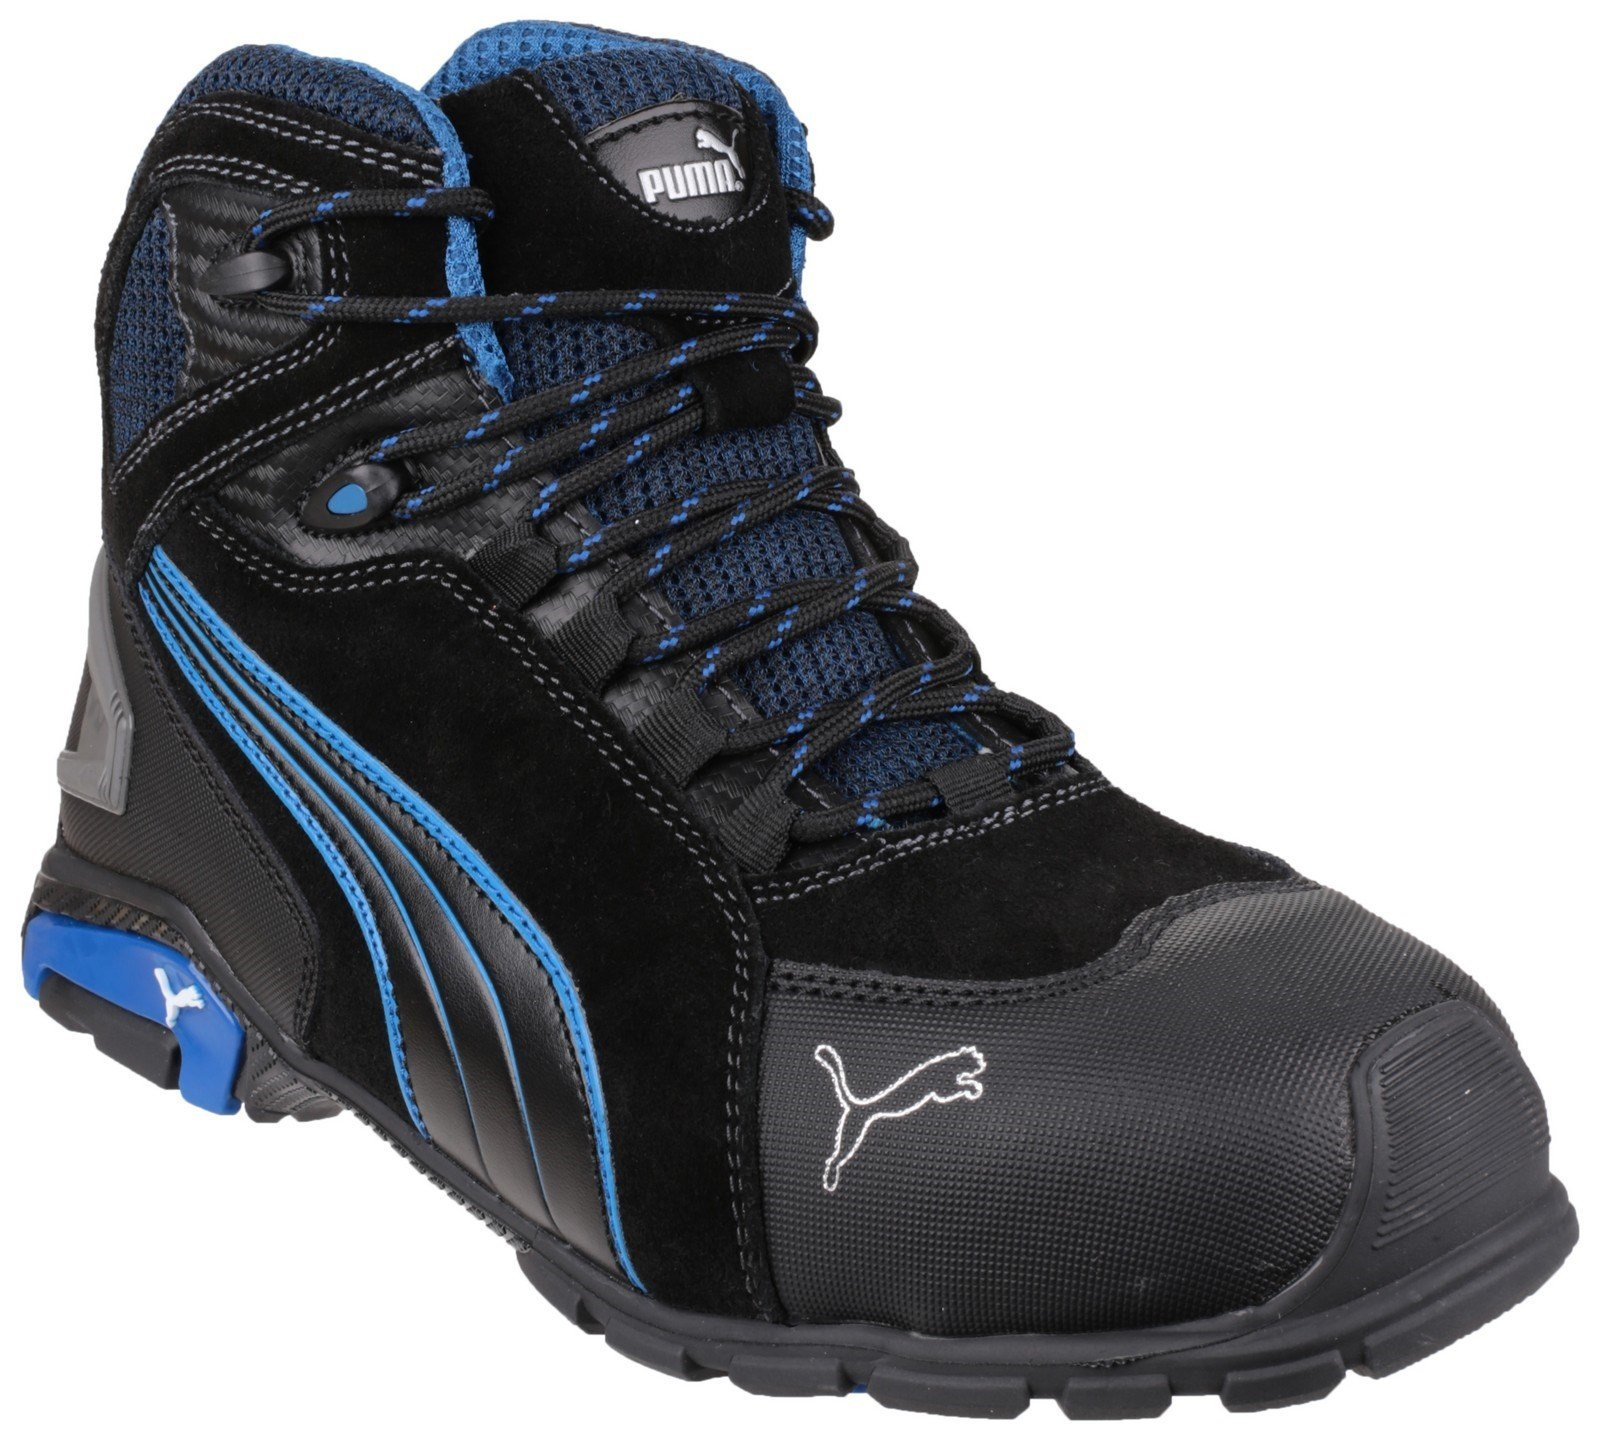 Puma Safety Unisex Rio Mid Lace-up Safety Boot Black 23091 - Black 6